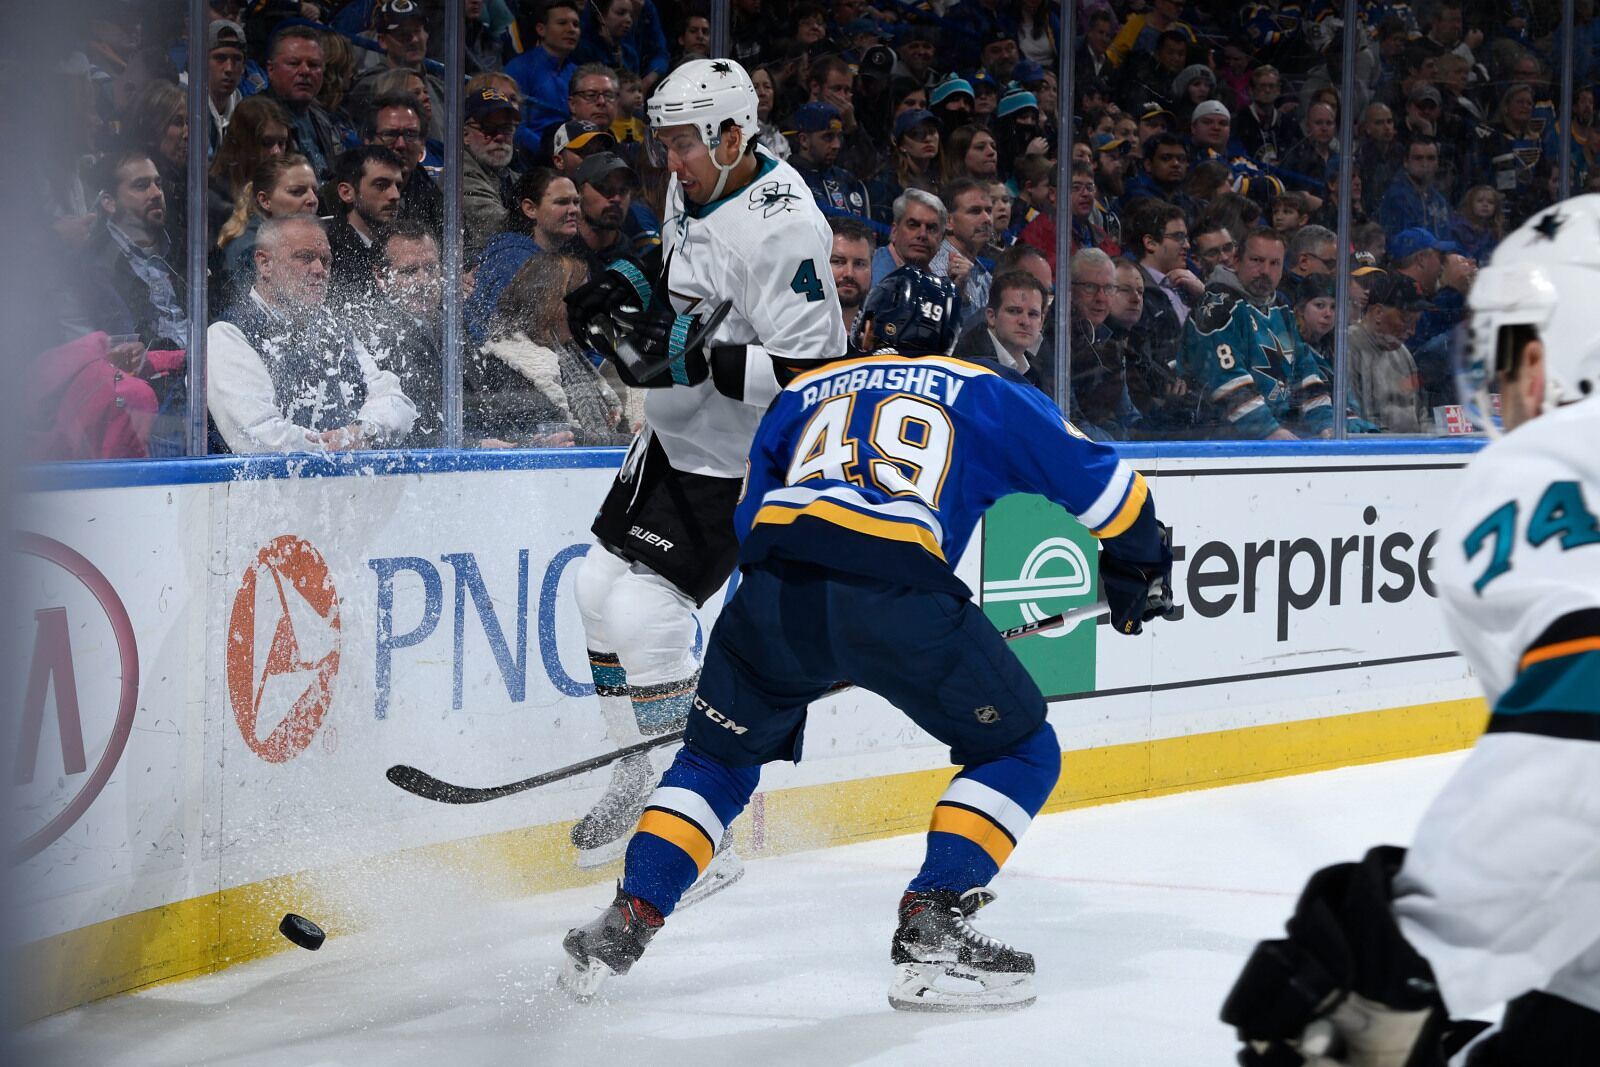 921799188-san-jose-sharks-v-st-louis-blues.jpg